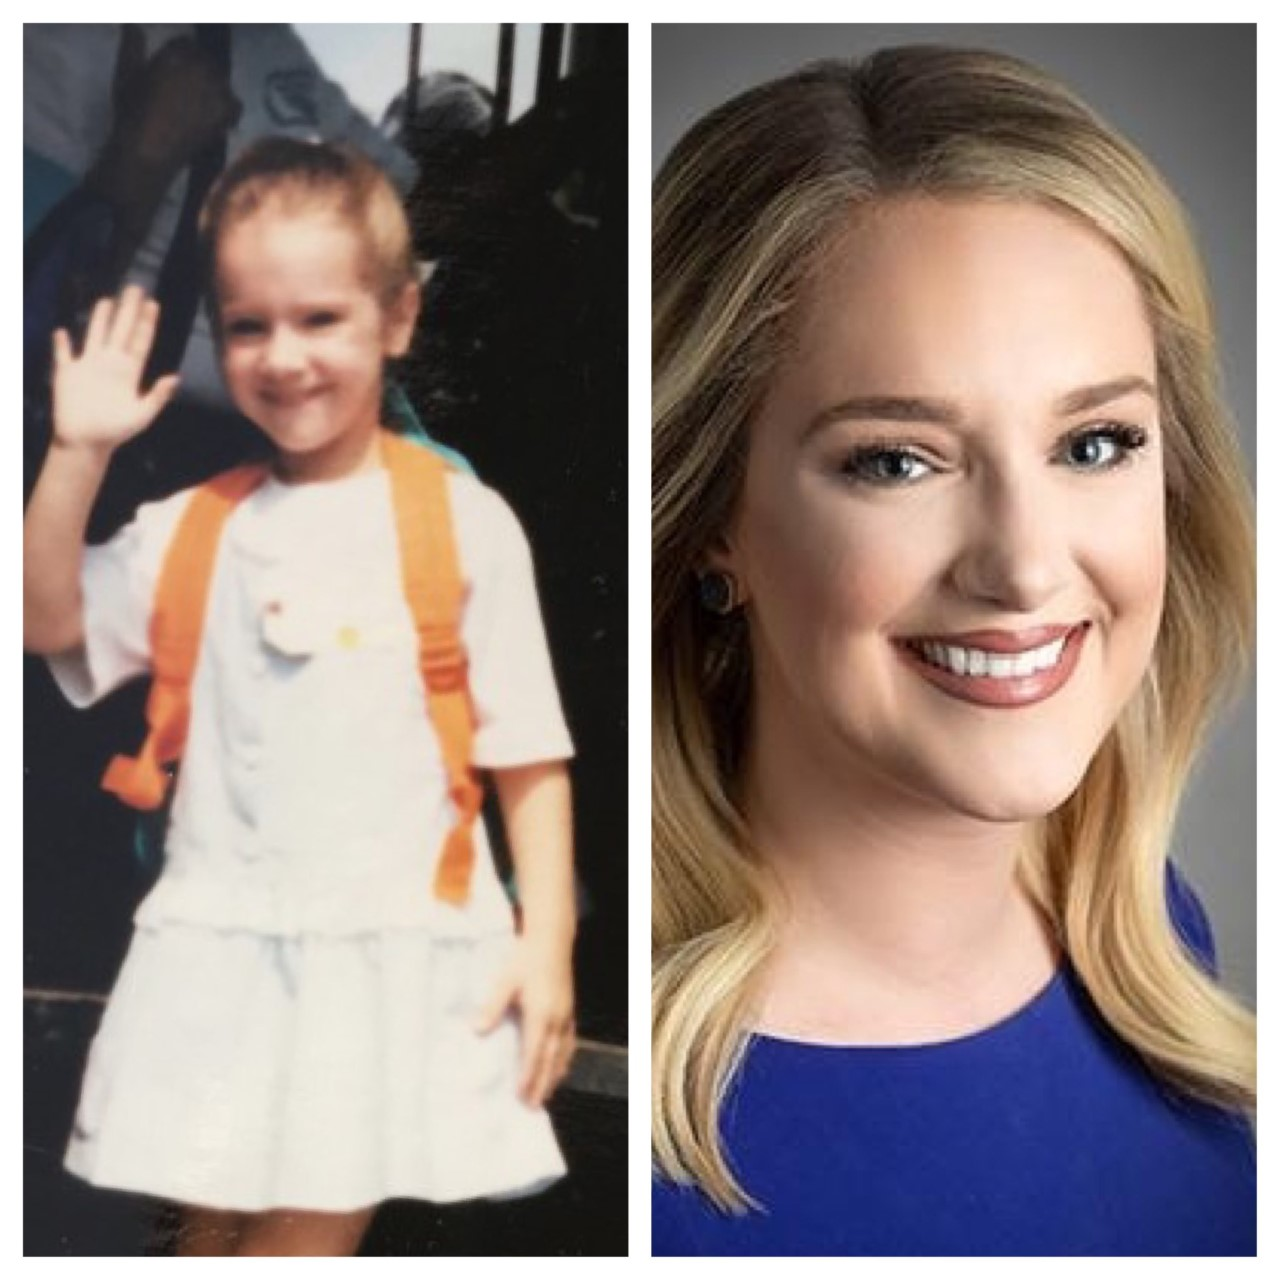 Rachelle Spence with her back to school picture and her current NBC25/FOX66 photo.